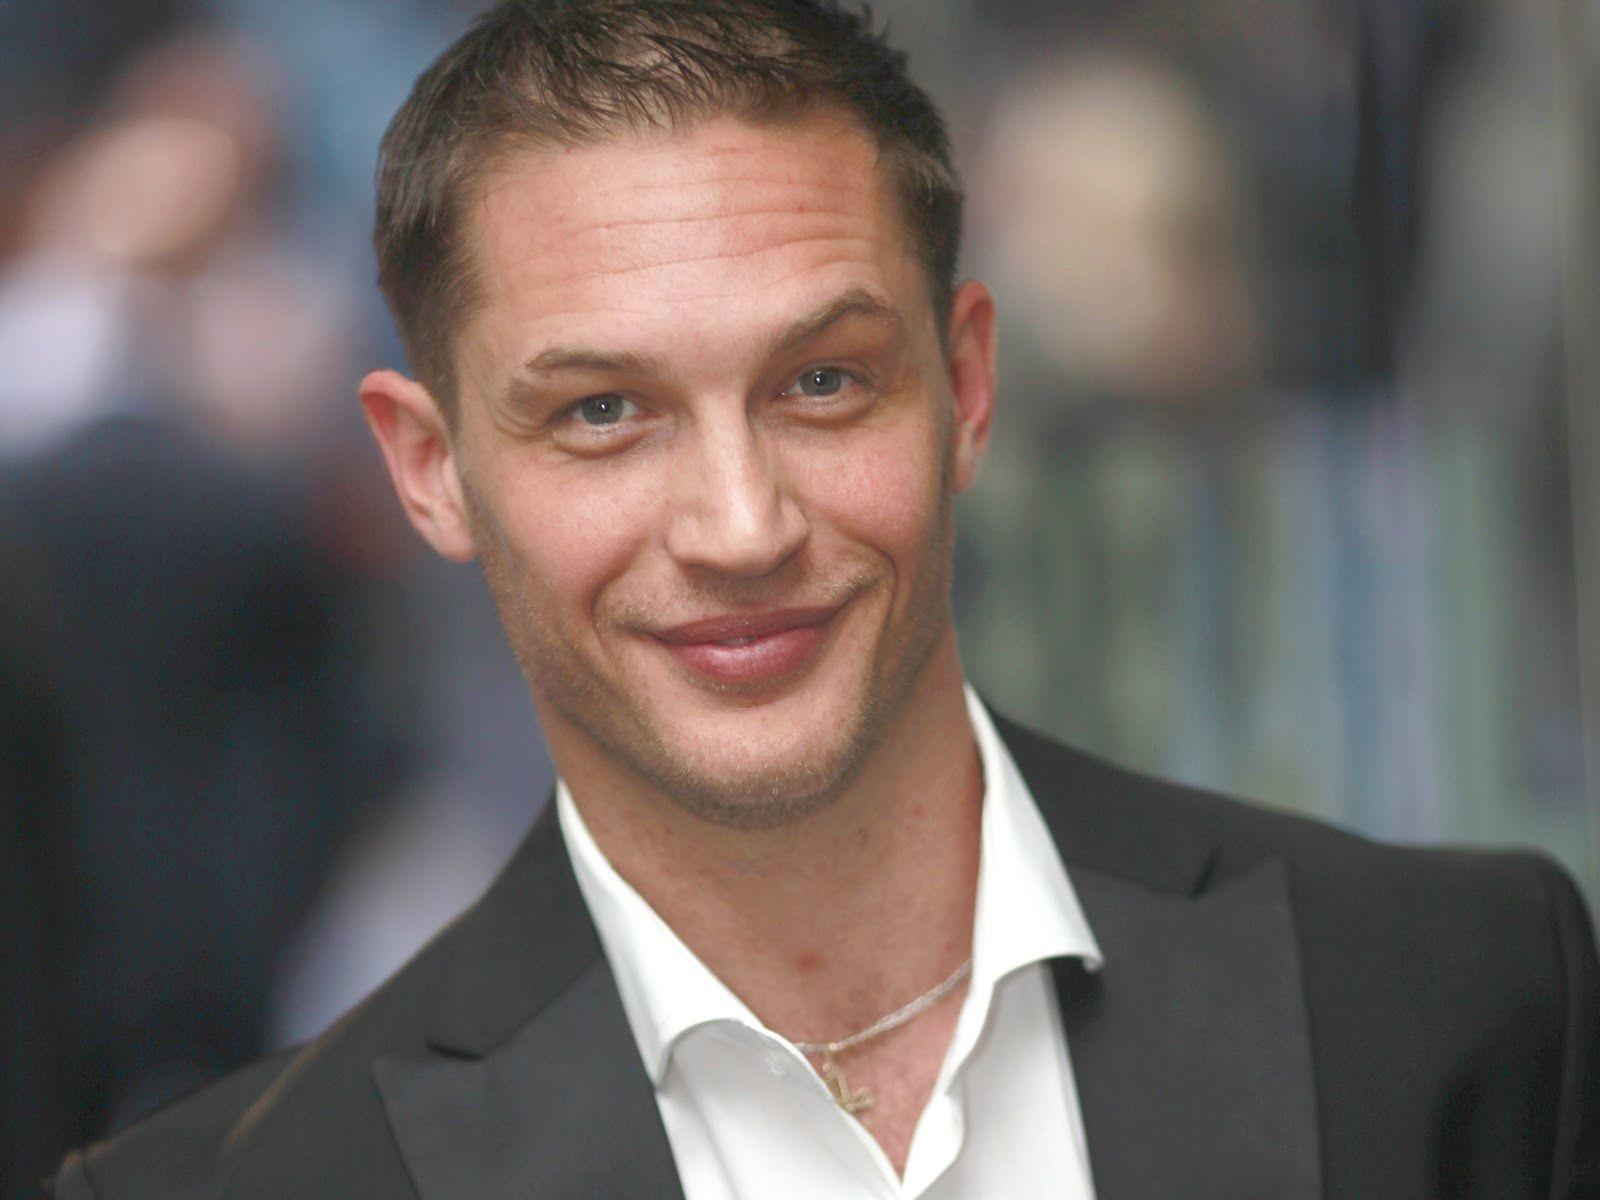 Actor Tom Hardy wallpapers and images - wallpapers, pictures, photos